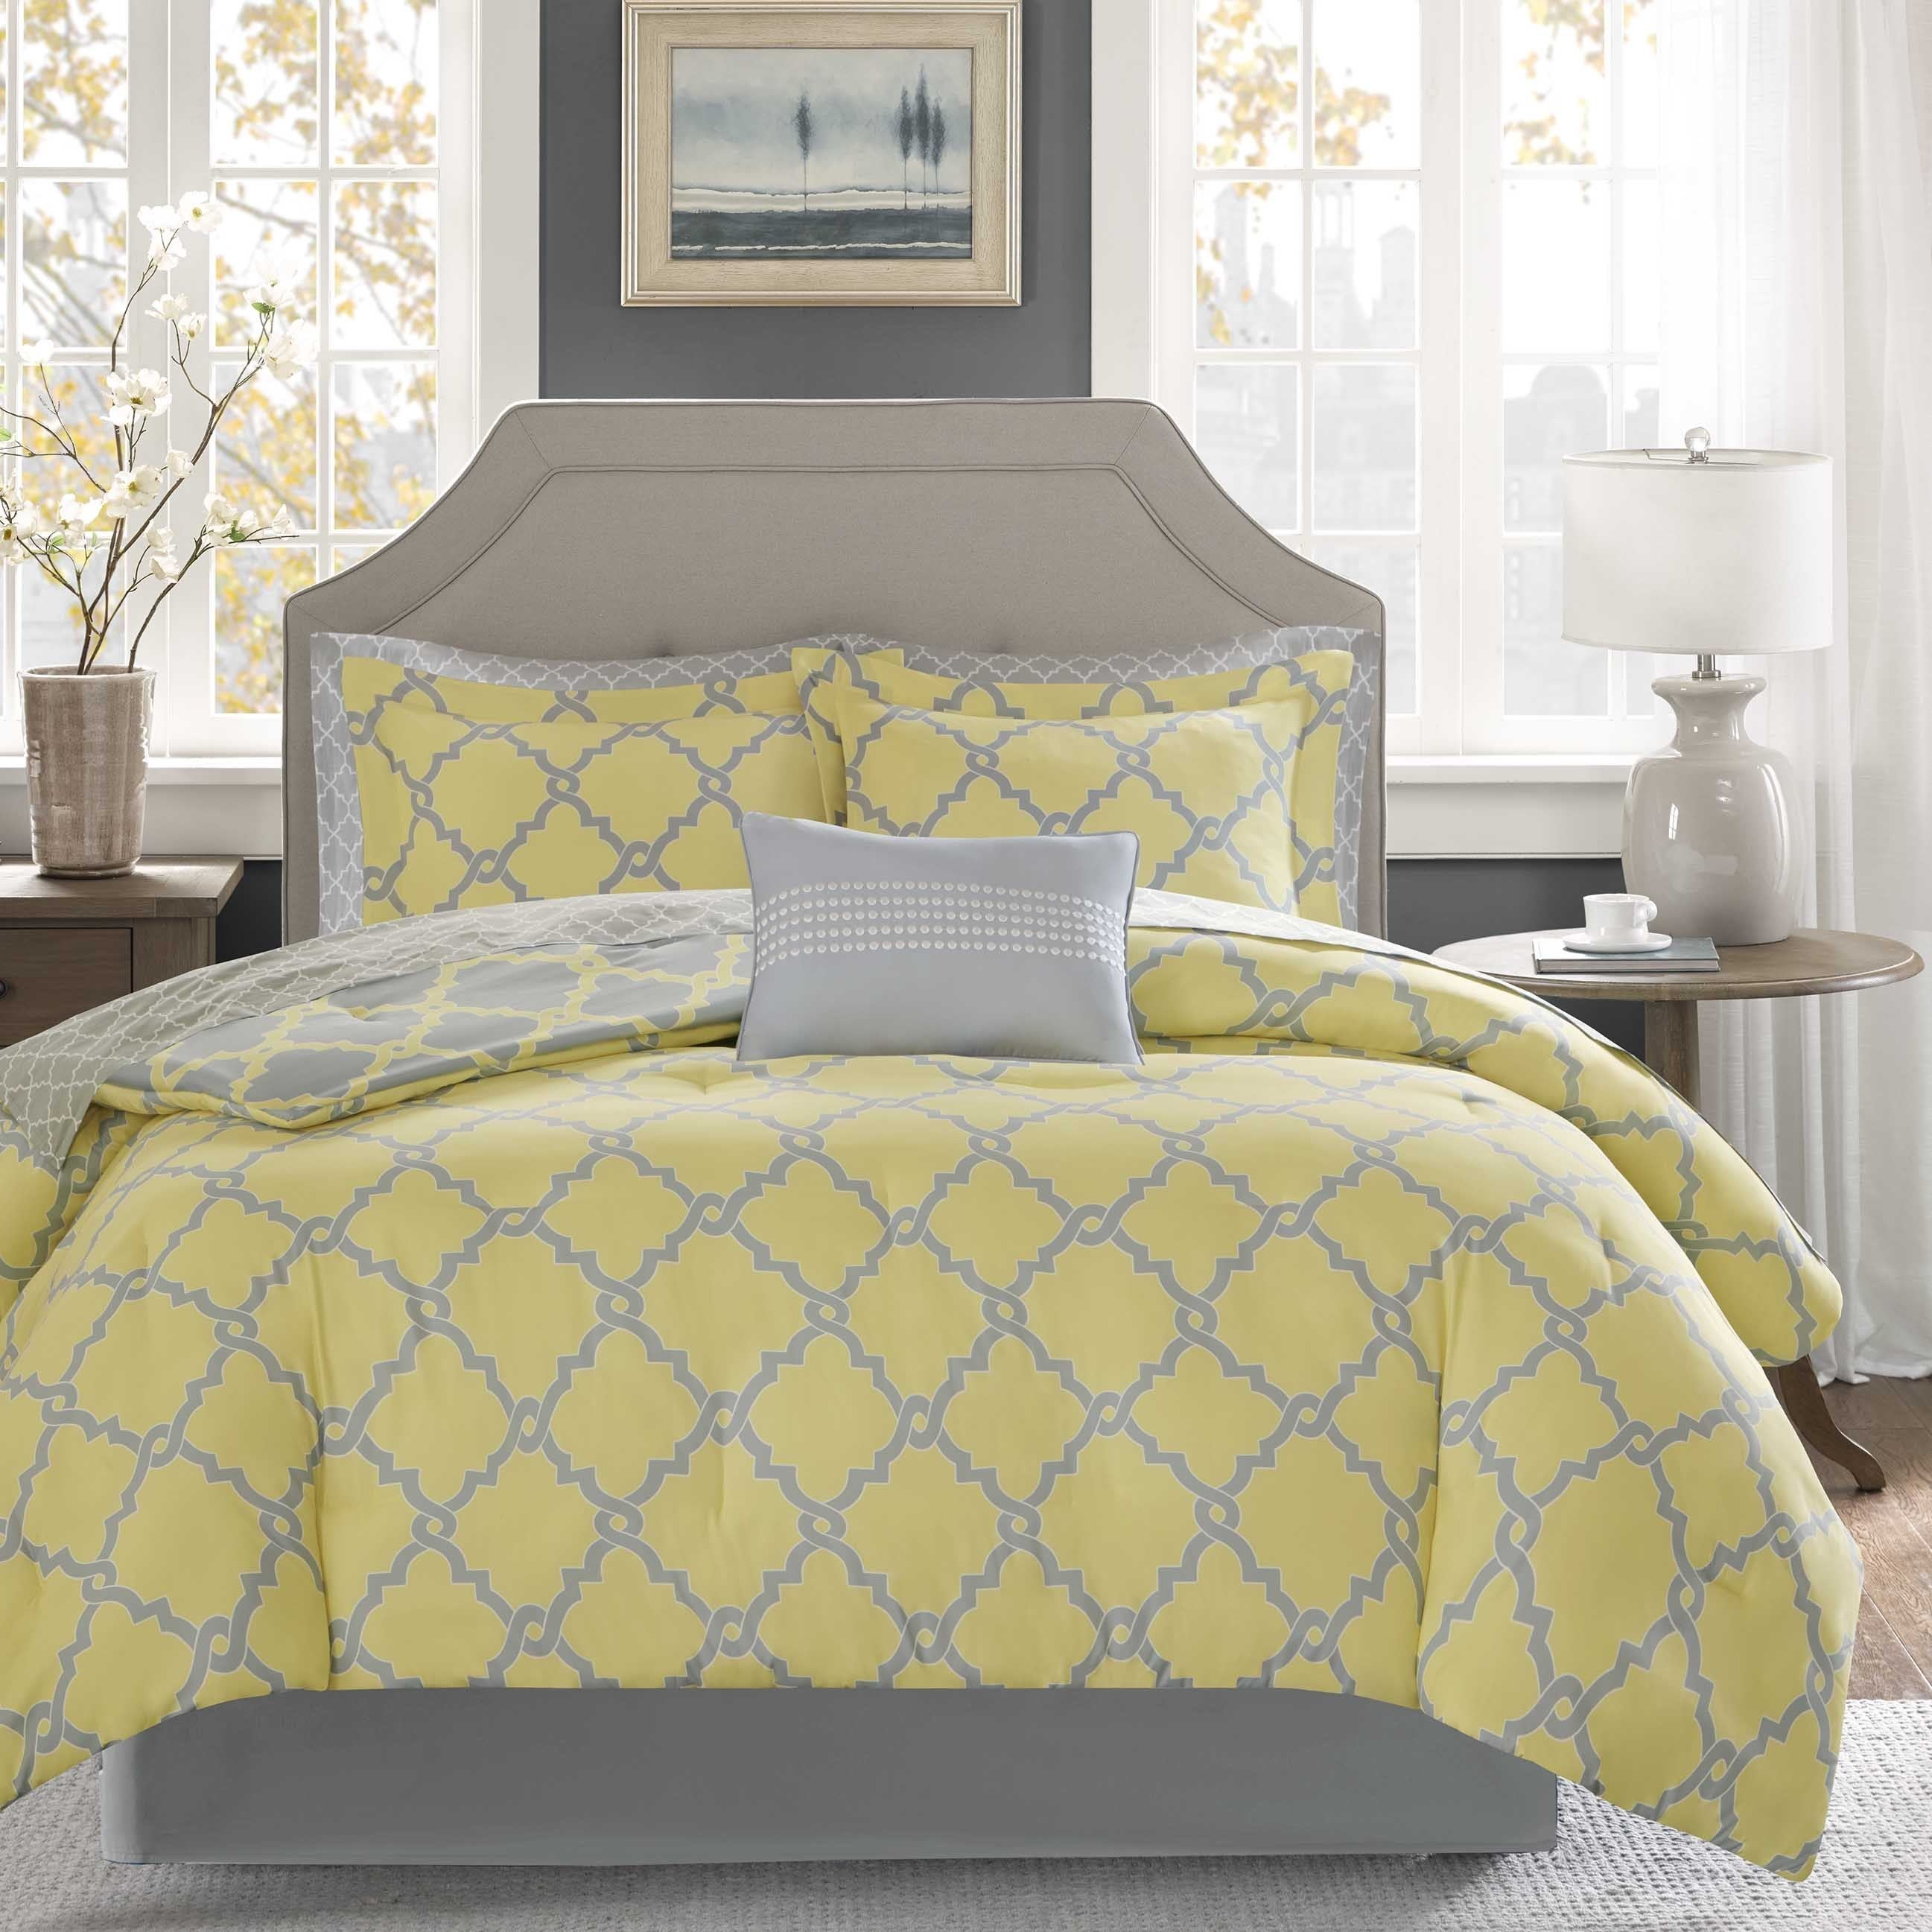 Madison Park Essentials Concord Grey/ Yellow Reversible Complete Comforter  and Cotton Sheet Set - Free Shipping Today - Overstock.com - 19050041